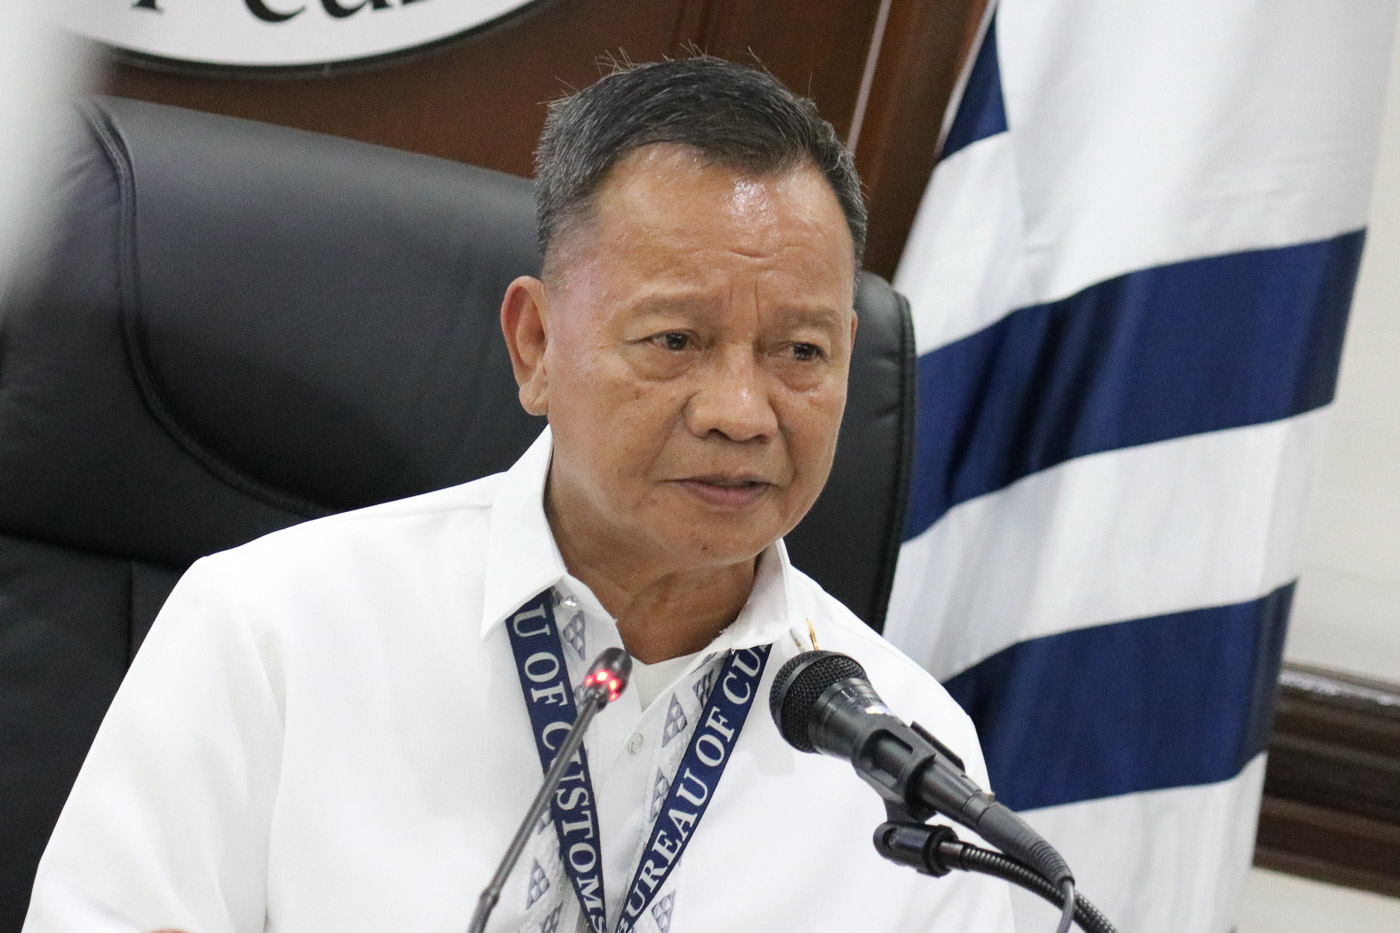 IN DEFENSE. Bureau of Customs Commissioner Isidro Lapeu00f1a talks to media during a press conference on August 11, 2018, on the backtracking and ongoing investigation of the intercepted shabu in MICP. BOC Public Information u0026 Assistance Division photo